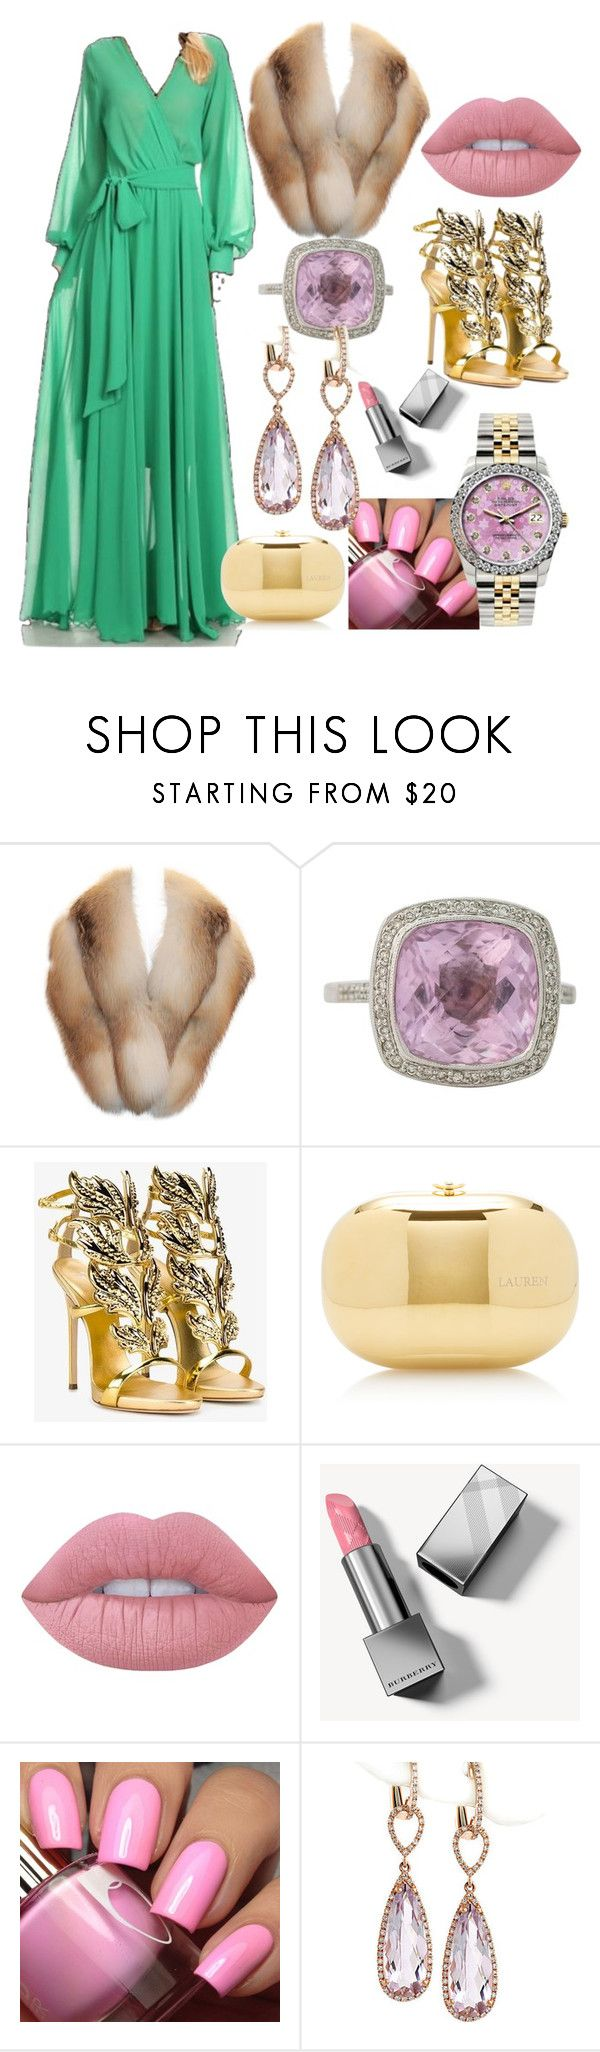 """Green Gold and Stoles"" by cagreinvented on Polyvore featuring Giuseppe Zanotti, Jeffrey Levinson, Lime Crime, Burberry and Rolex"